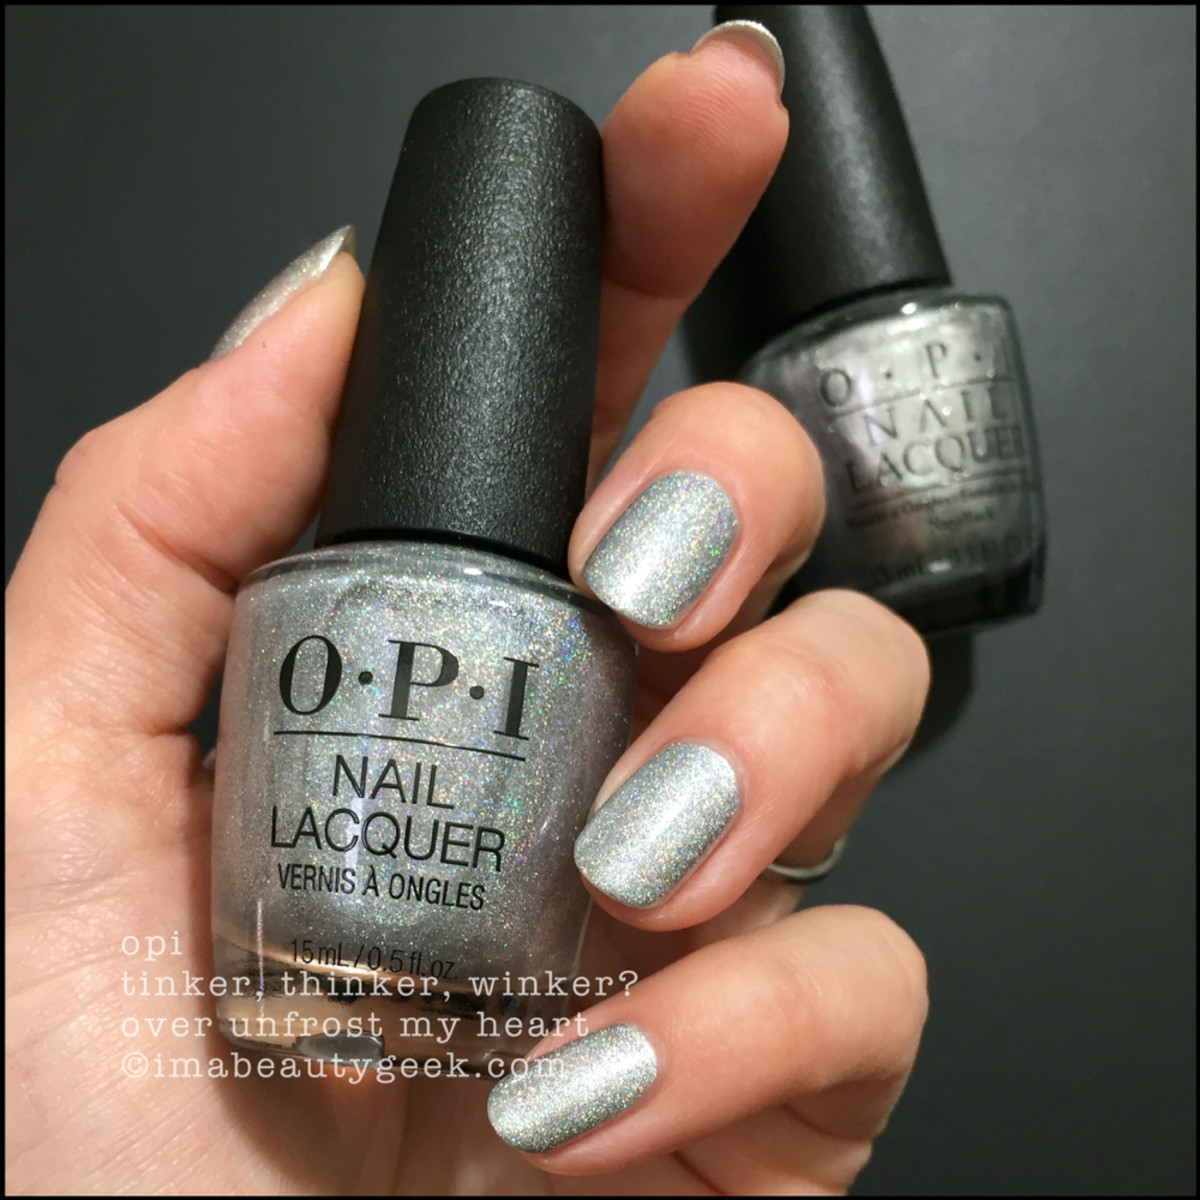 OPI Tinker, Thinker, Winker? over Unfrost My Heart - OPI Nutcracker Holiday 2018